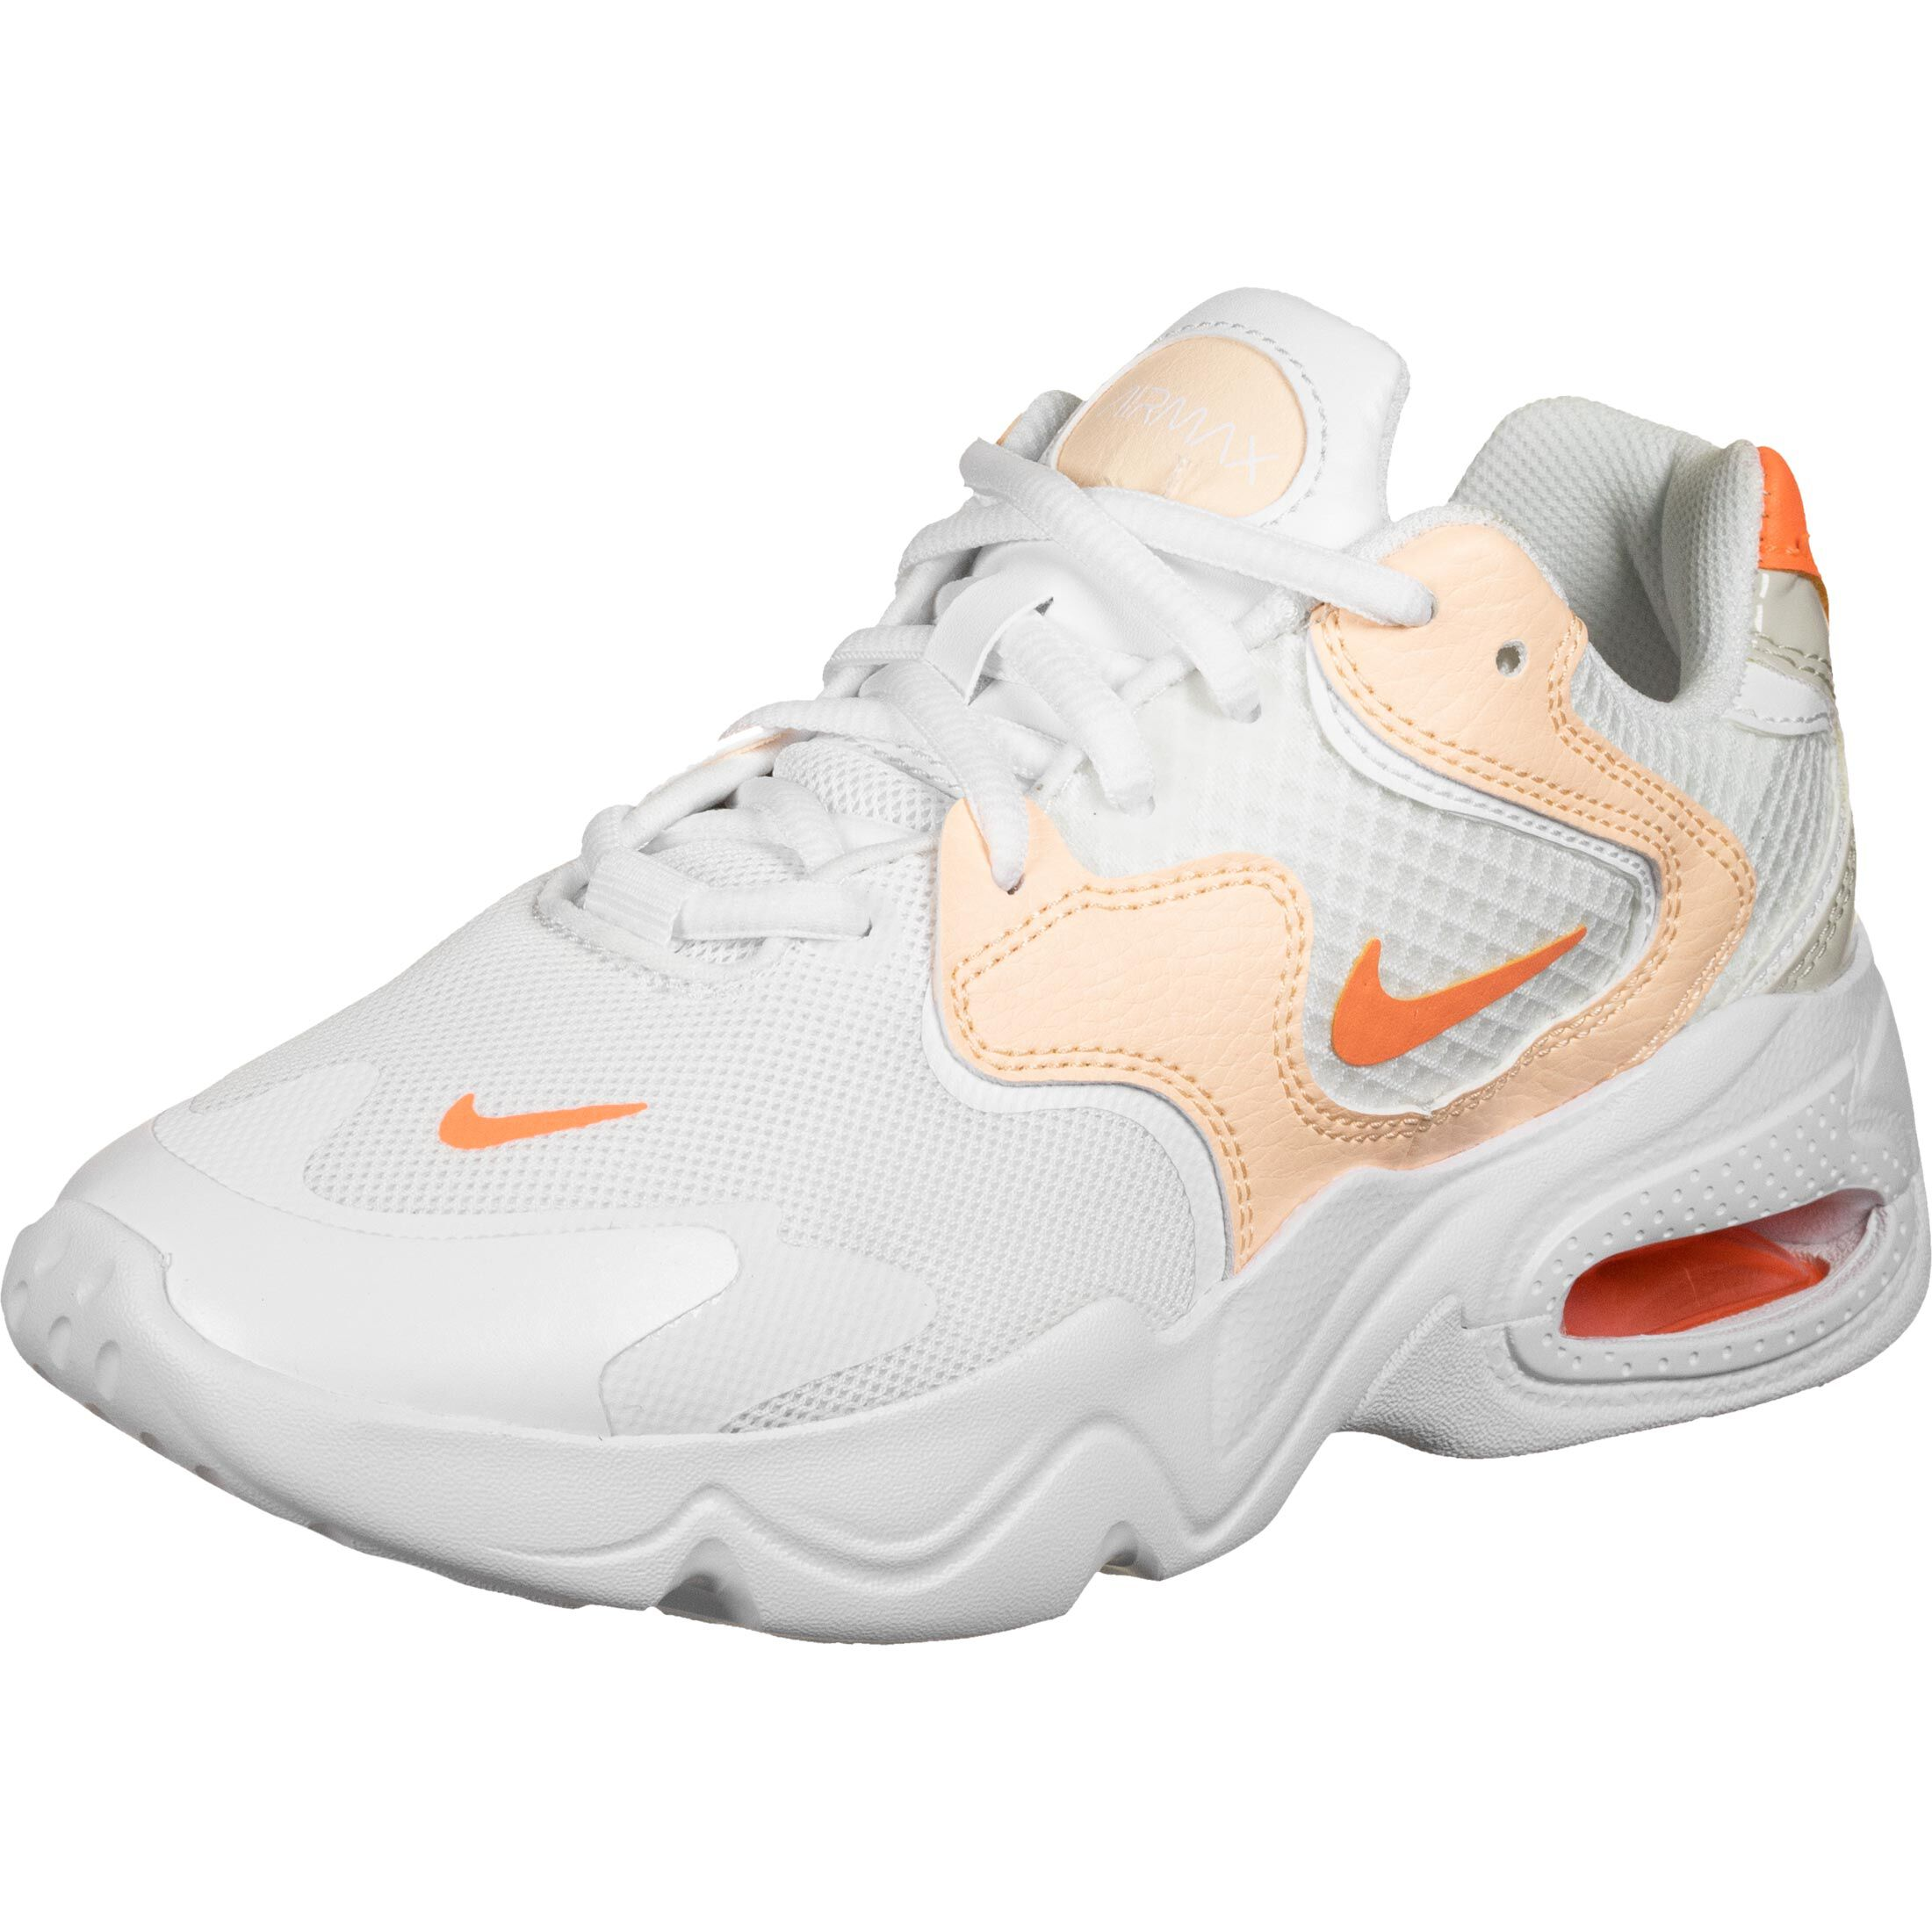 Nike Air Max 2X - Sneakers Low at Stylefile